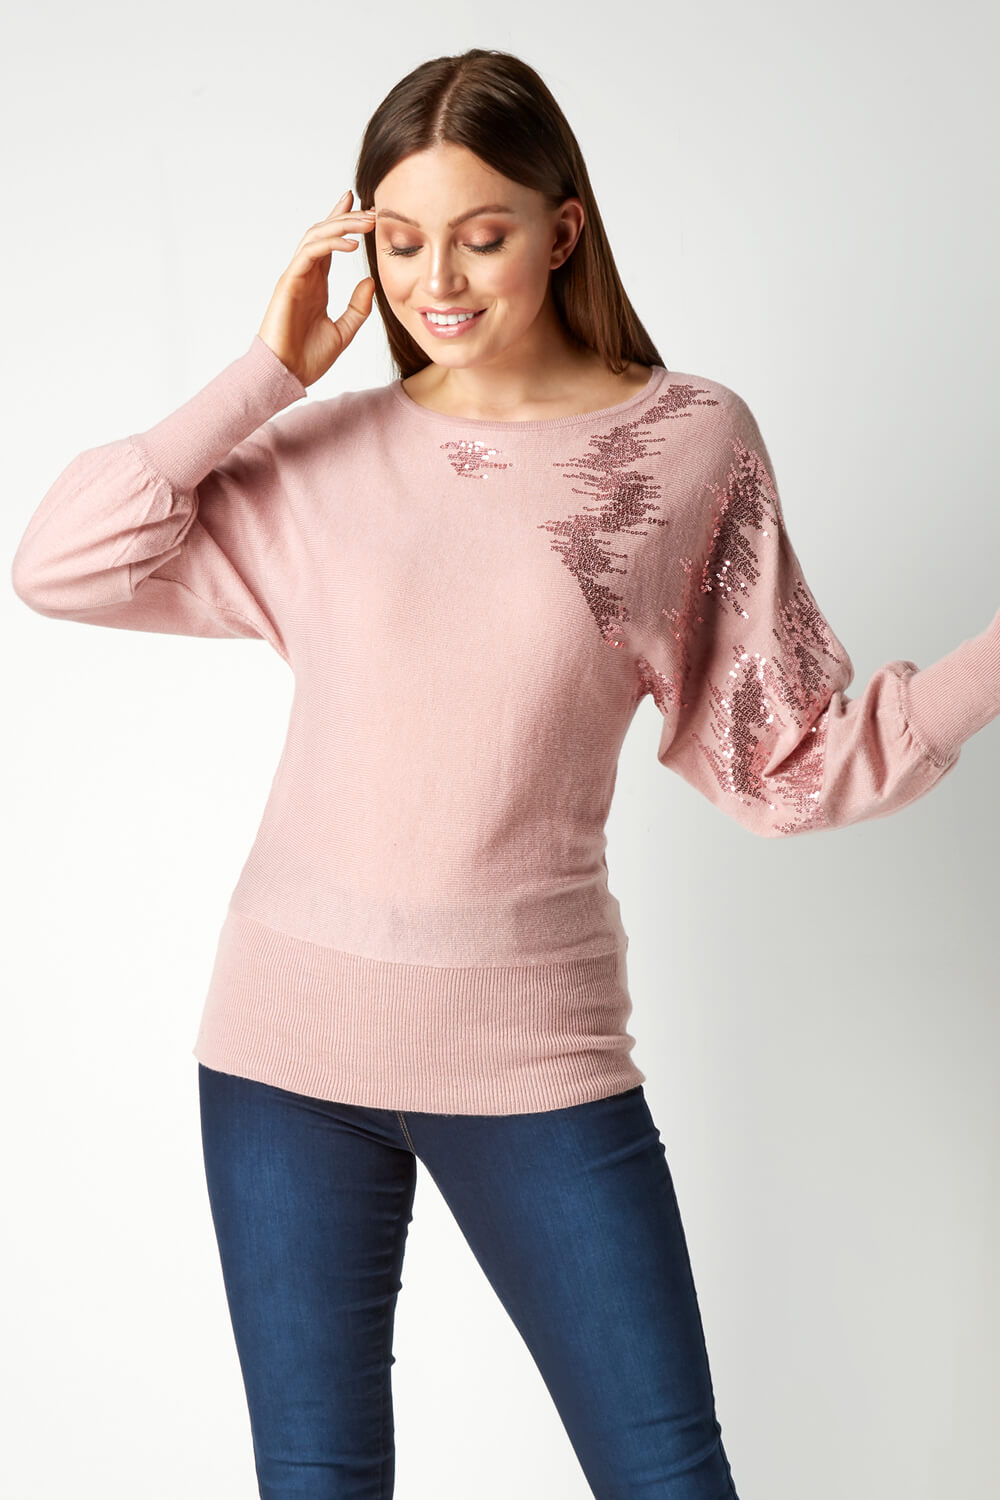 Roman-Originals-Women-039-s-Sequin-Embellished-Batwing-Sleeve-Boat-Neck-Jumper thumbnail 18